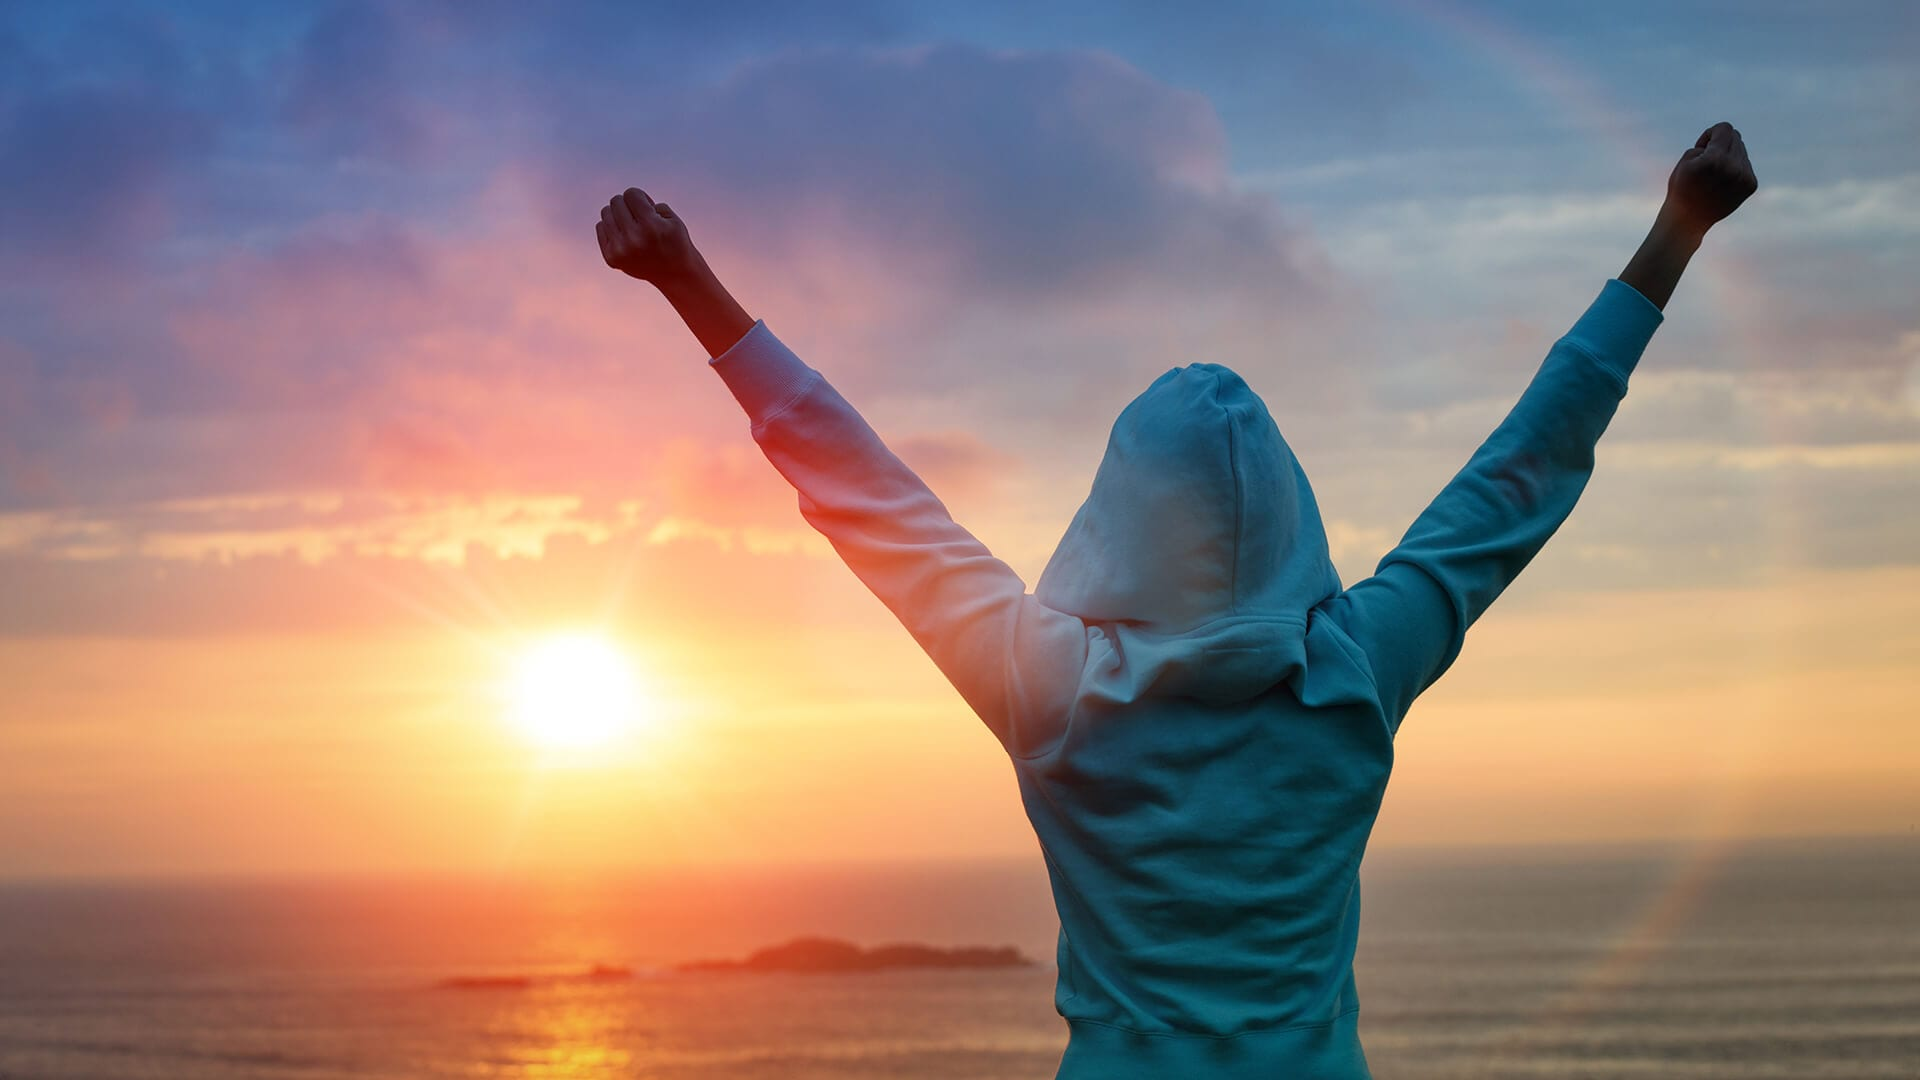 Hooded person with hands aloft in 'V' position with the sea and sun rising in the background.